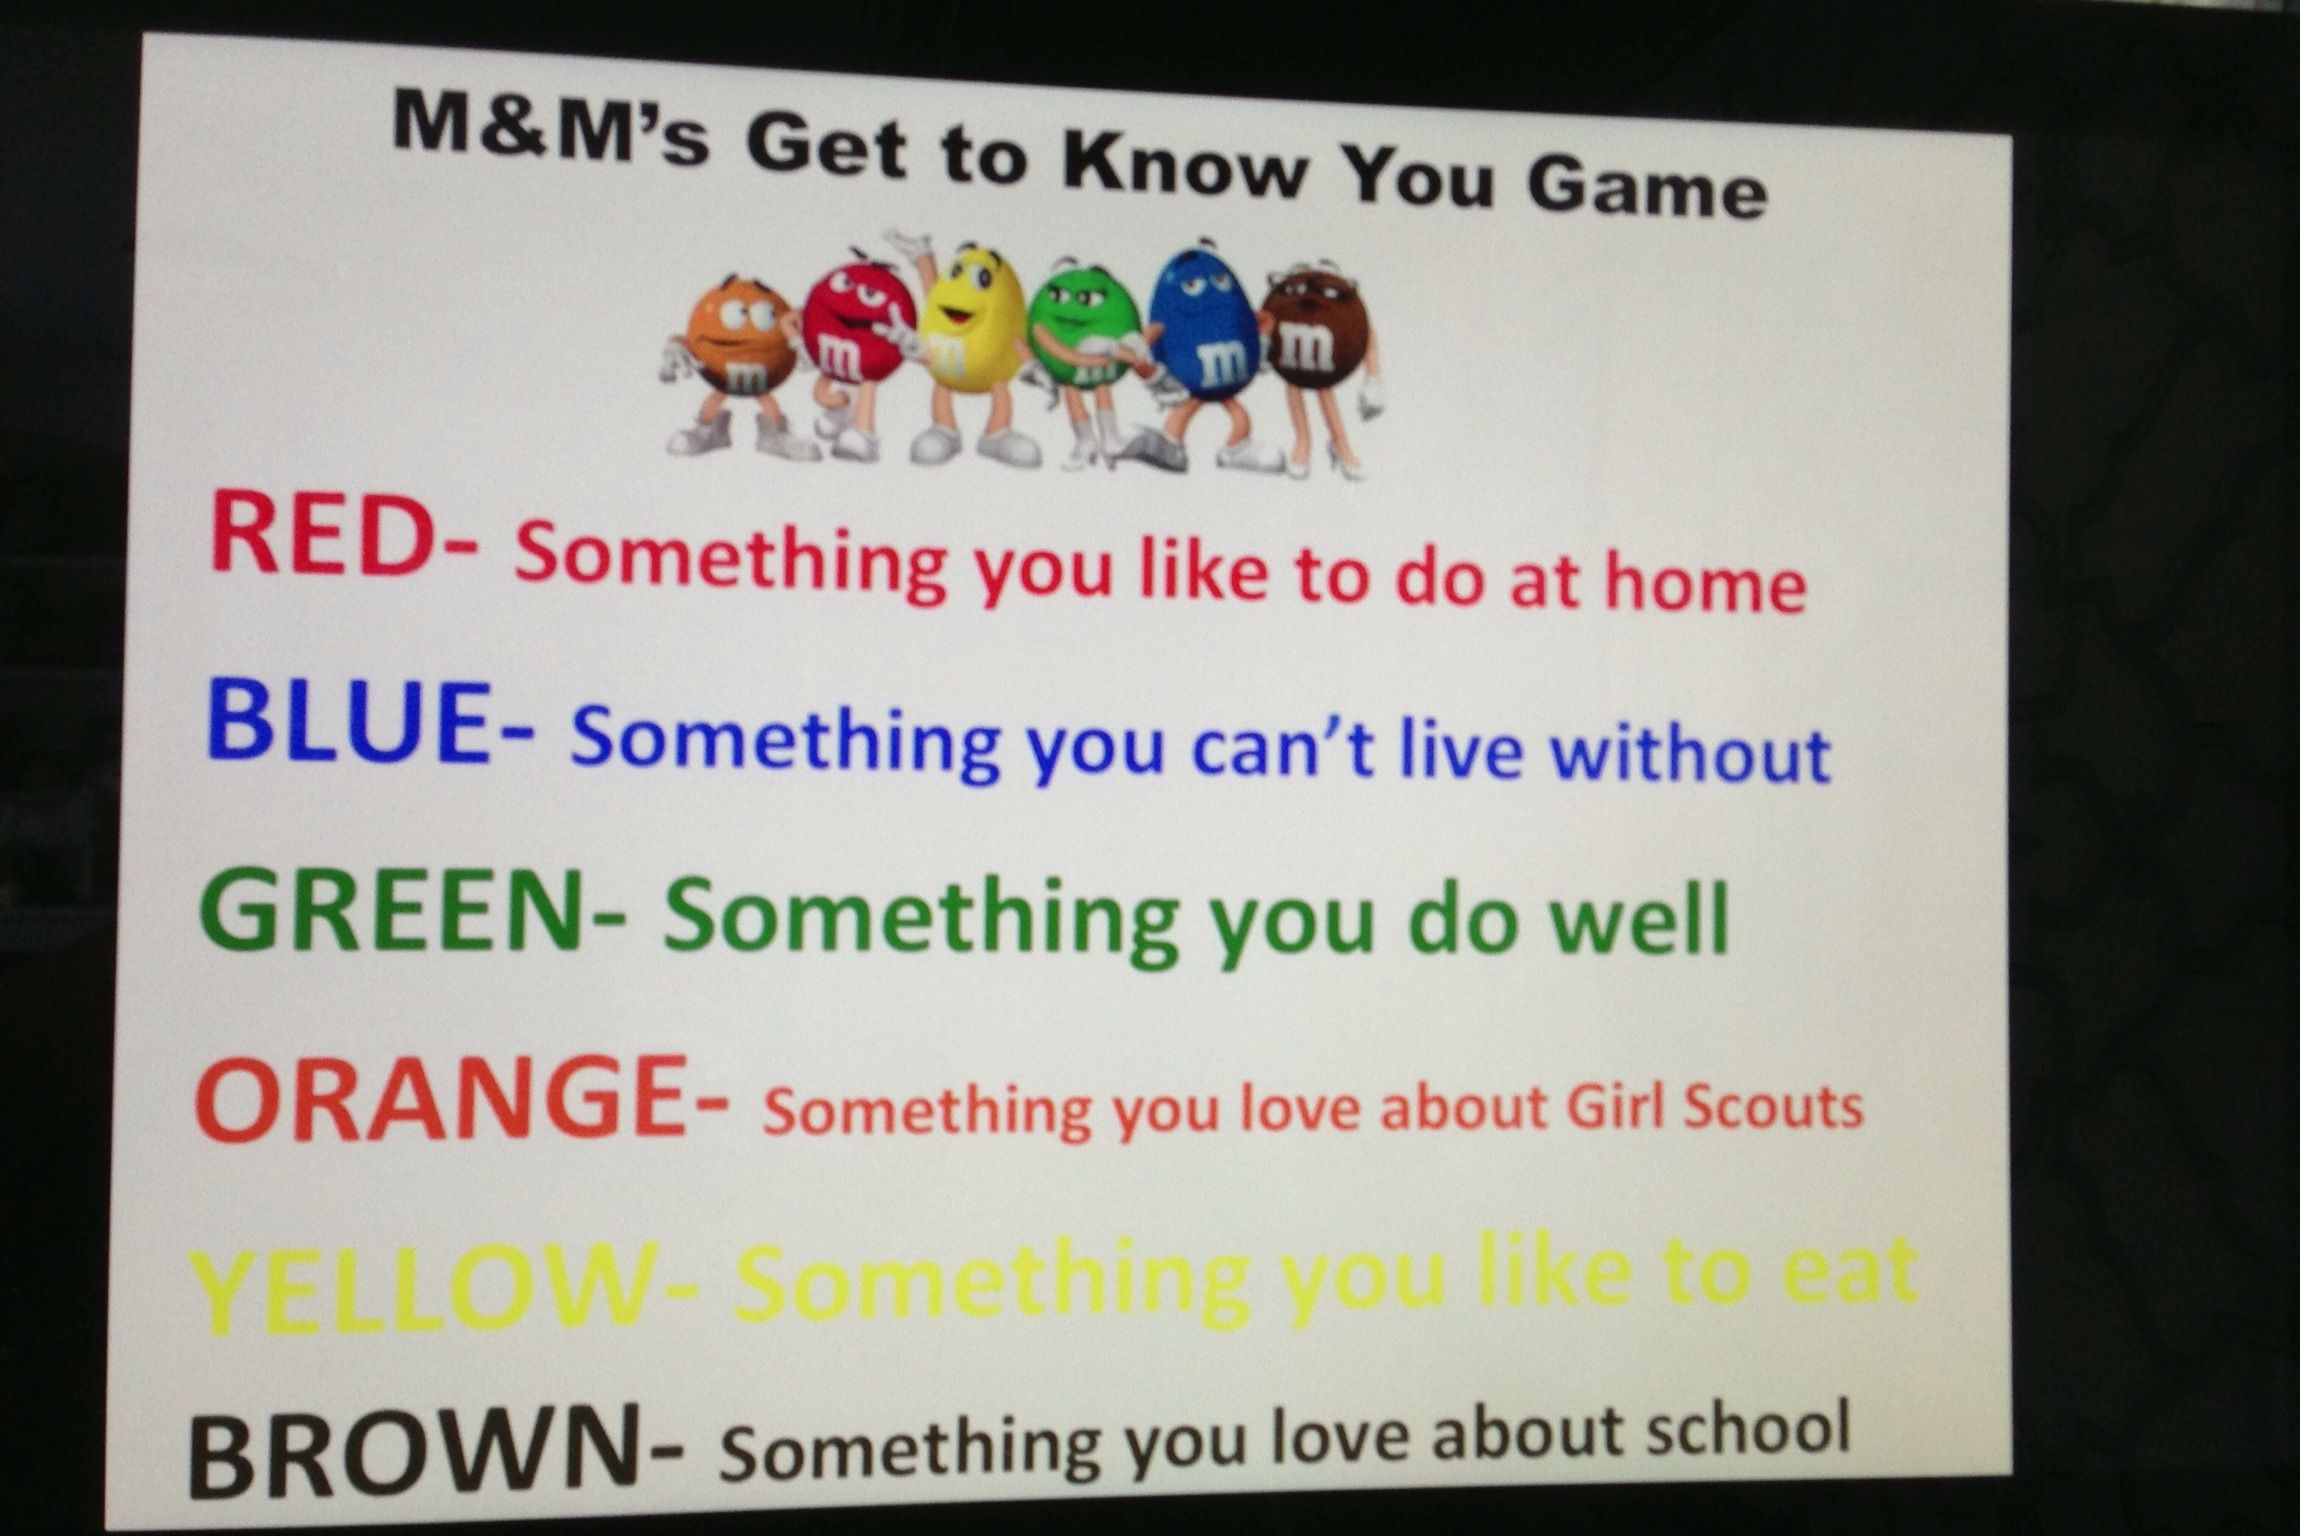 M Amp M Get To Know You Game For Girl Scouts Each Girl Takes An M Amp M And Shares Something About